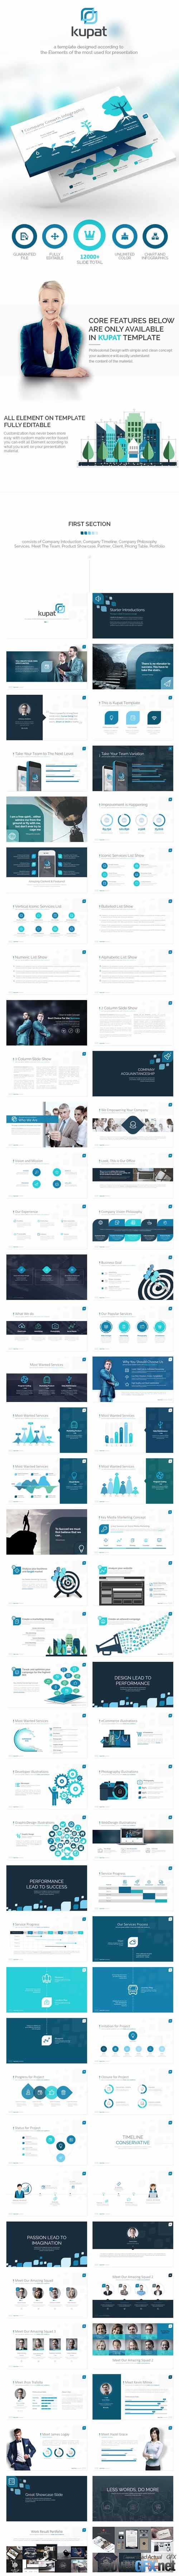 GR - Kupat - Big Deal Powerpoint Template 8943073